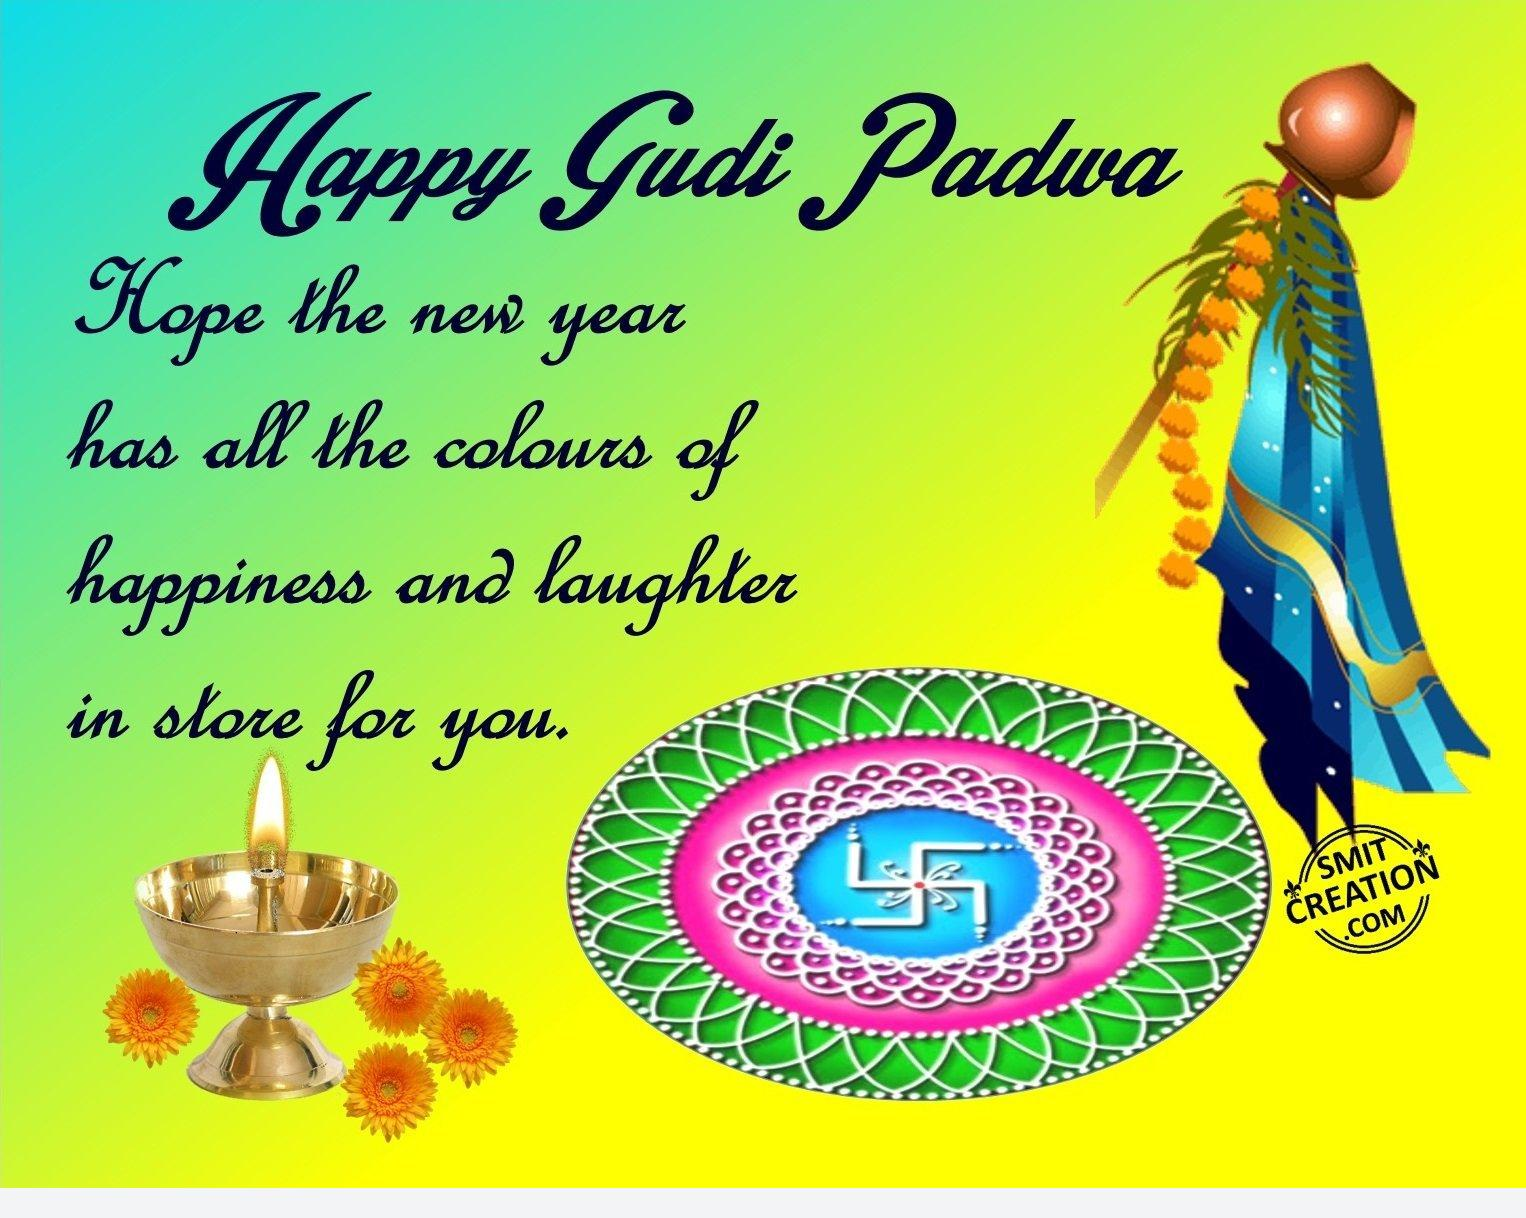 Gudi Padwa Pictures And Graphics Smitcreation Page 4